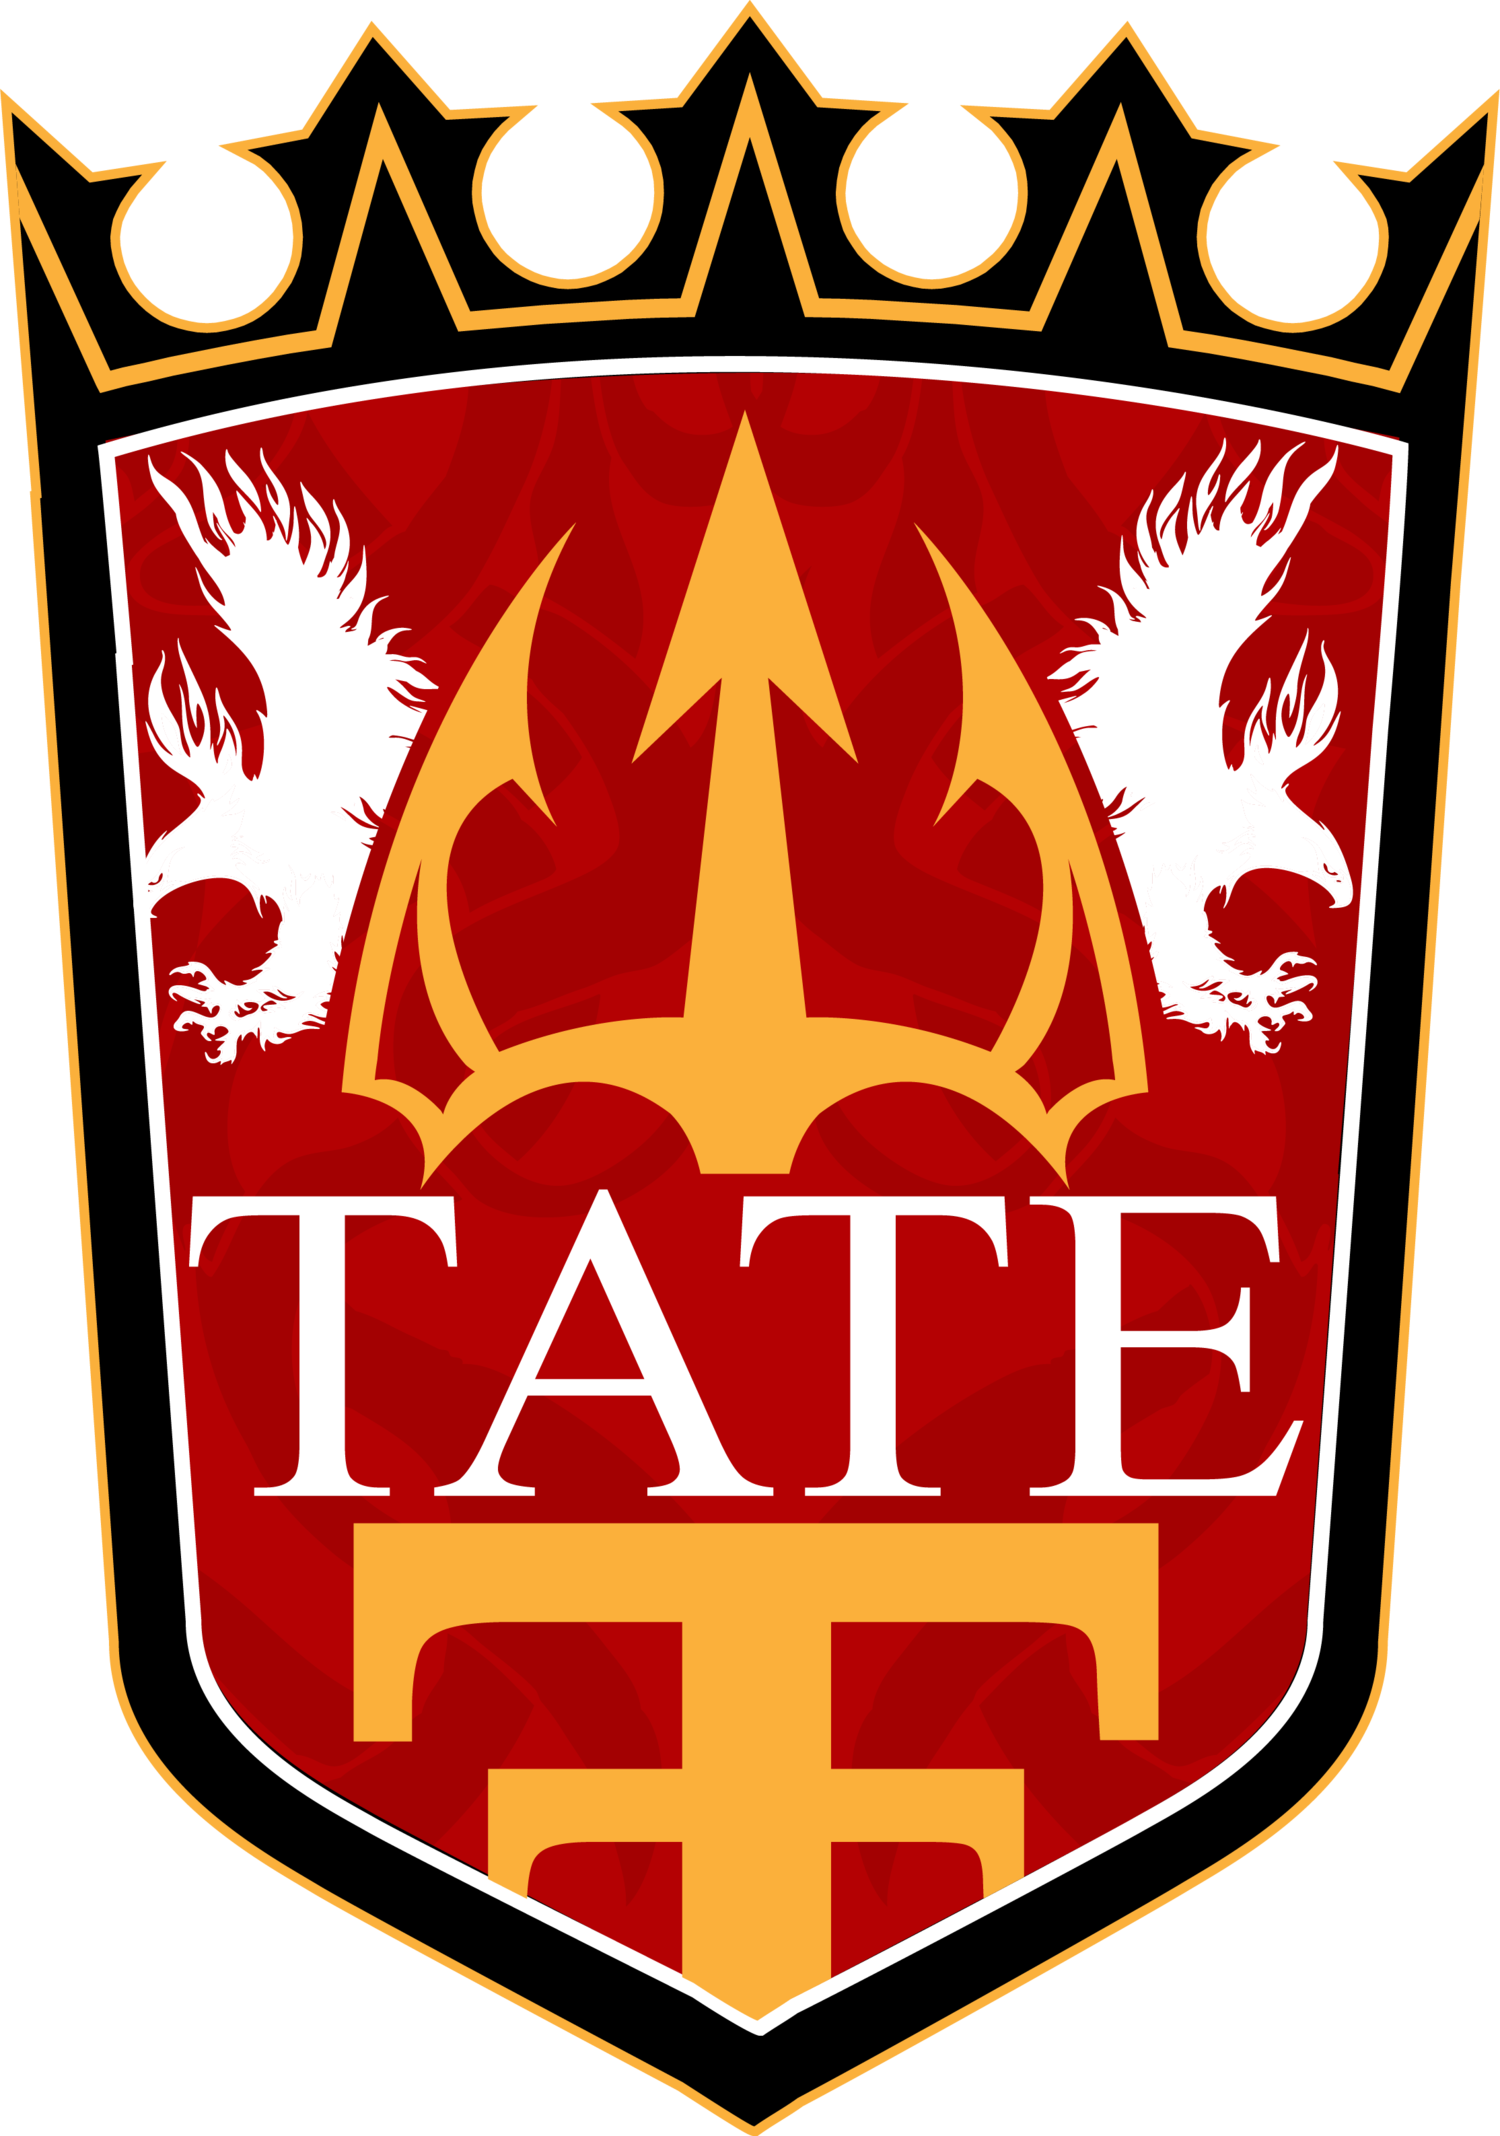 Tate Design Group